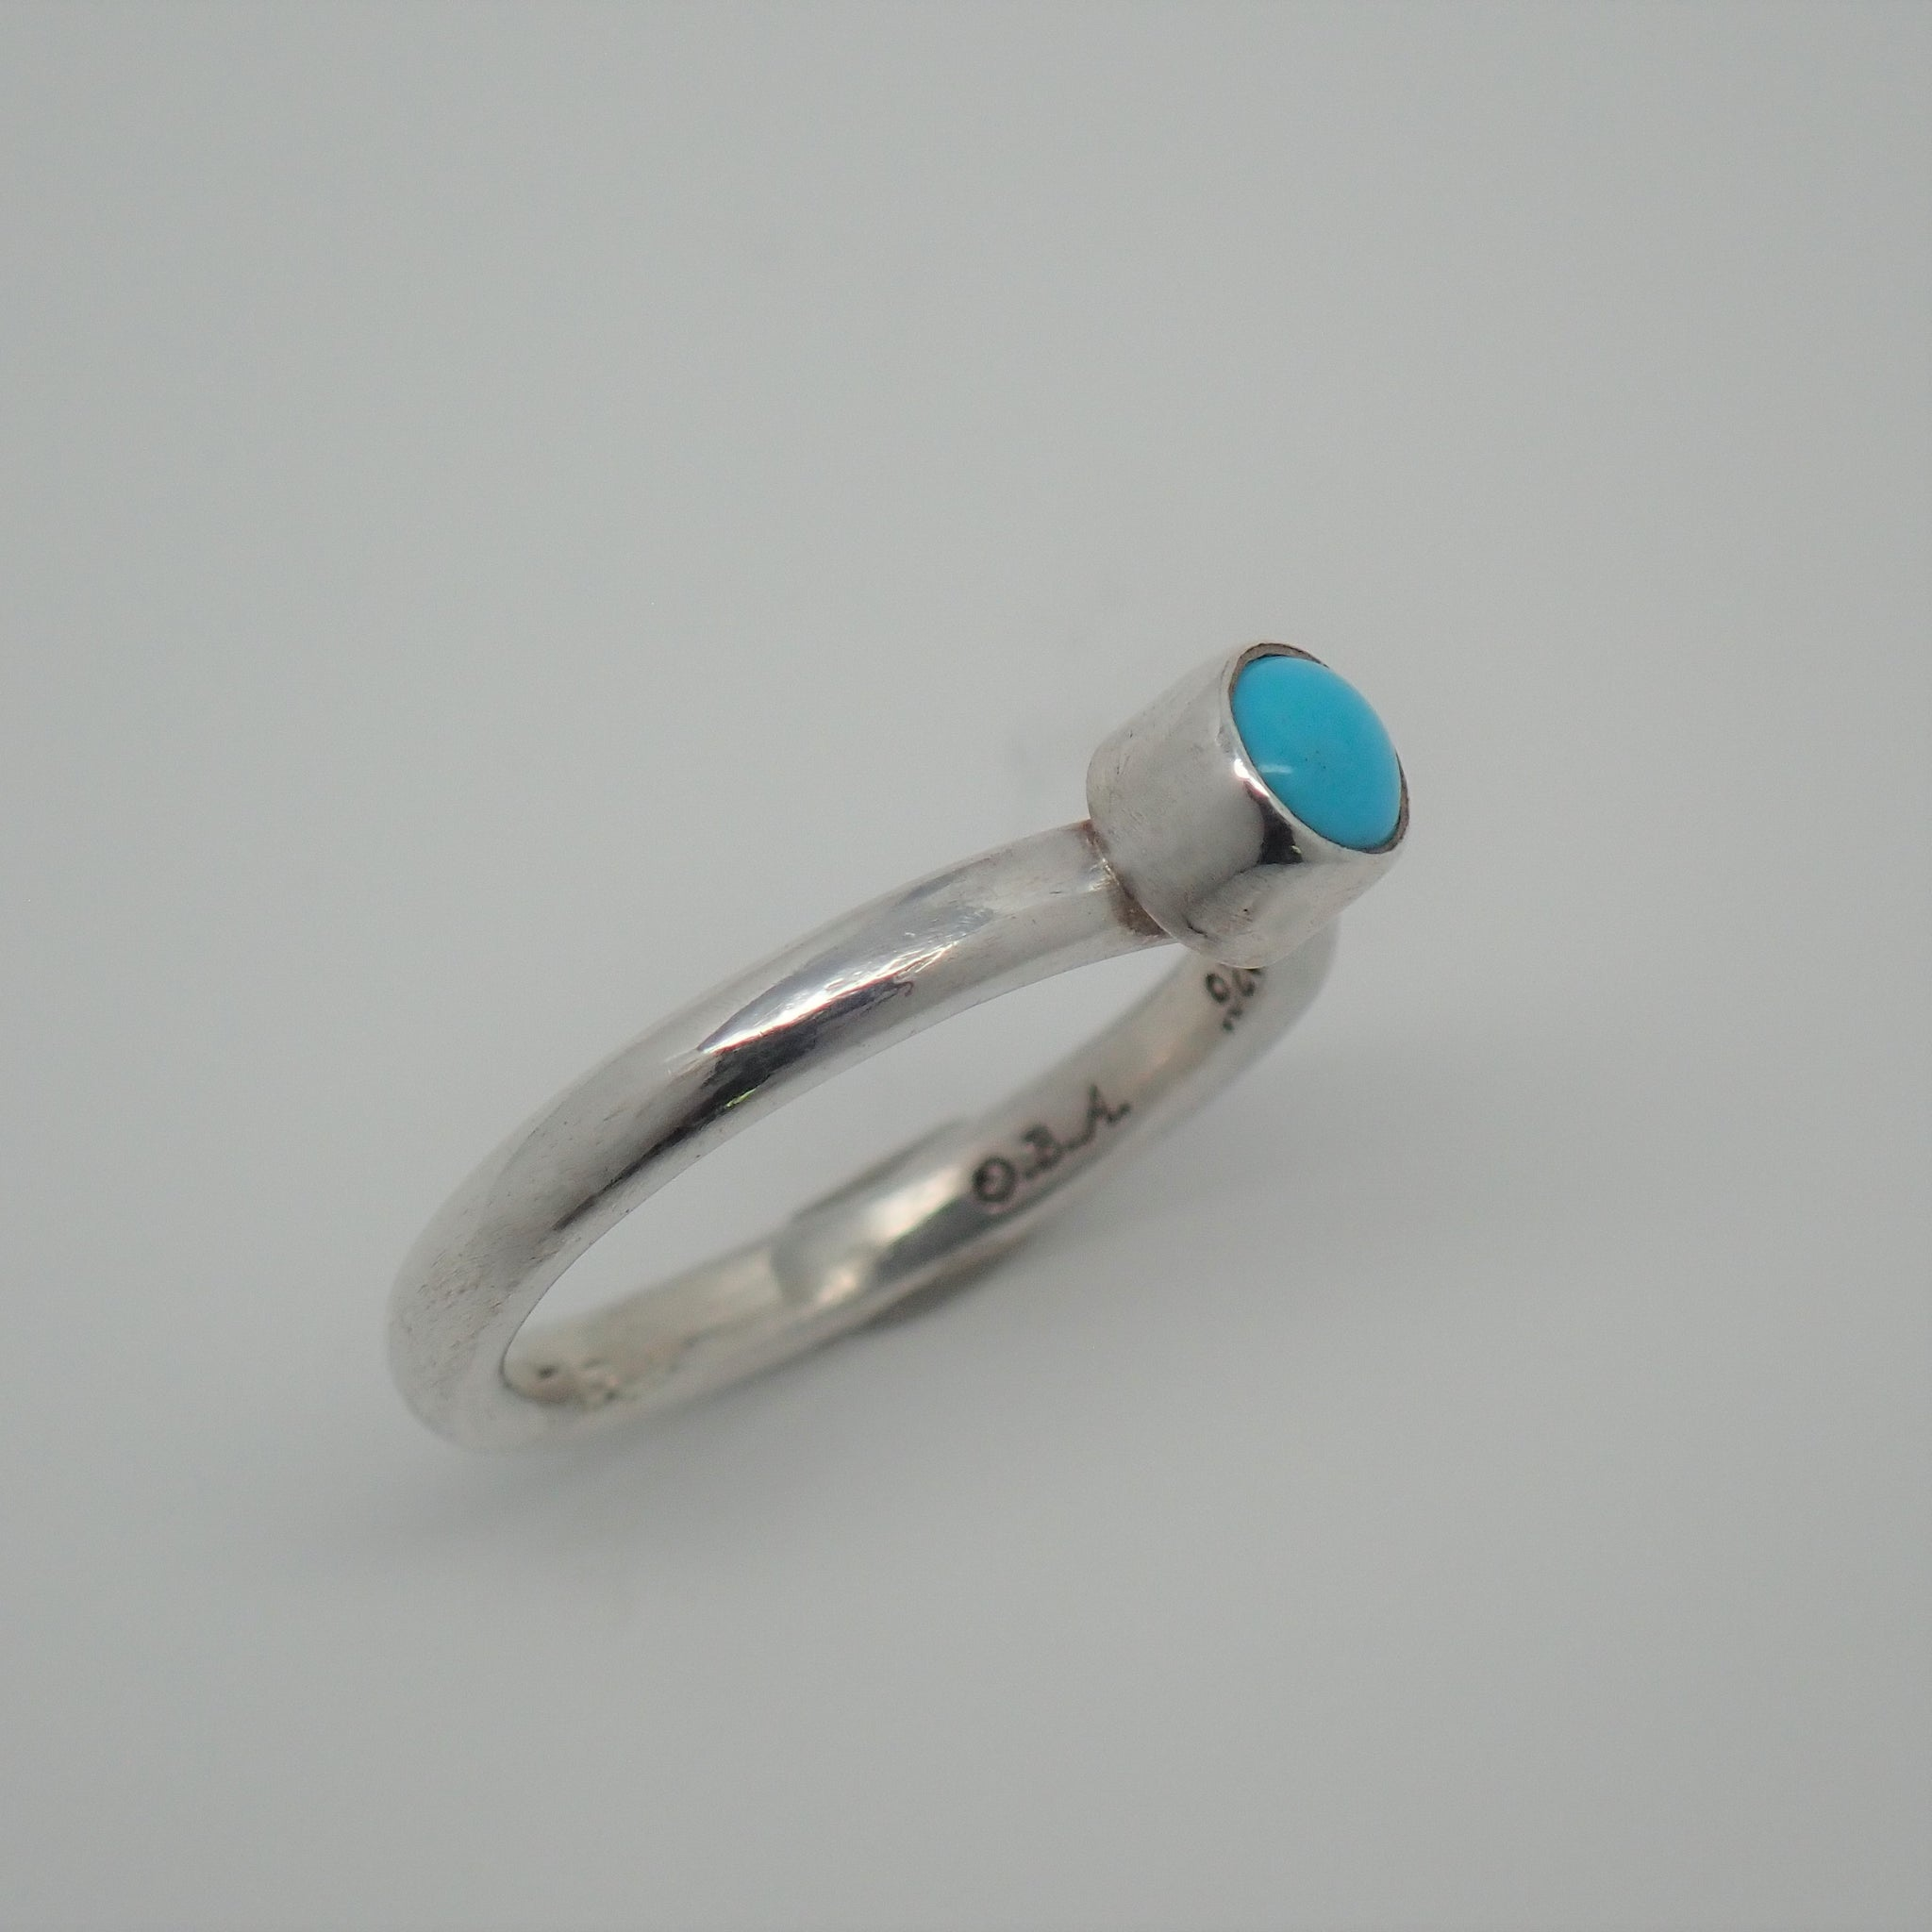 Sleeping Beauty Turquoise Ring (size 7)